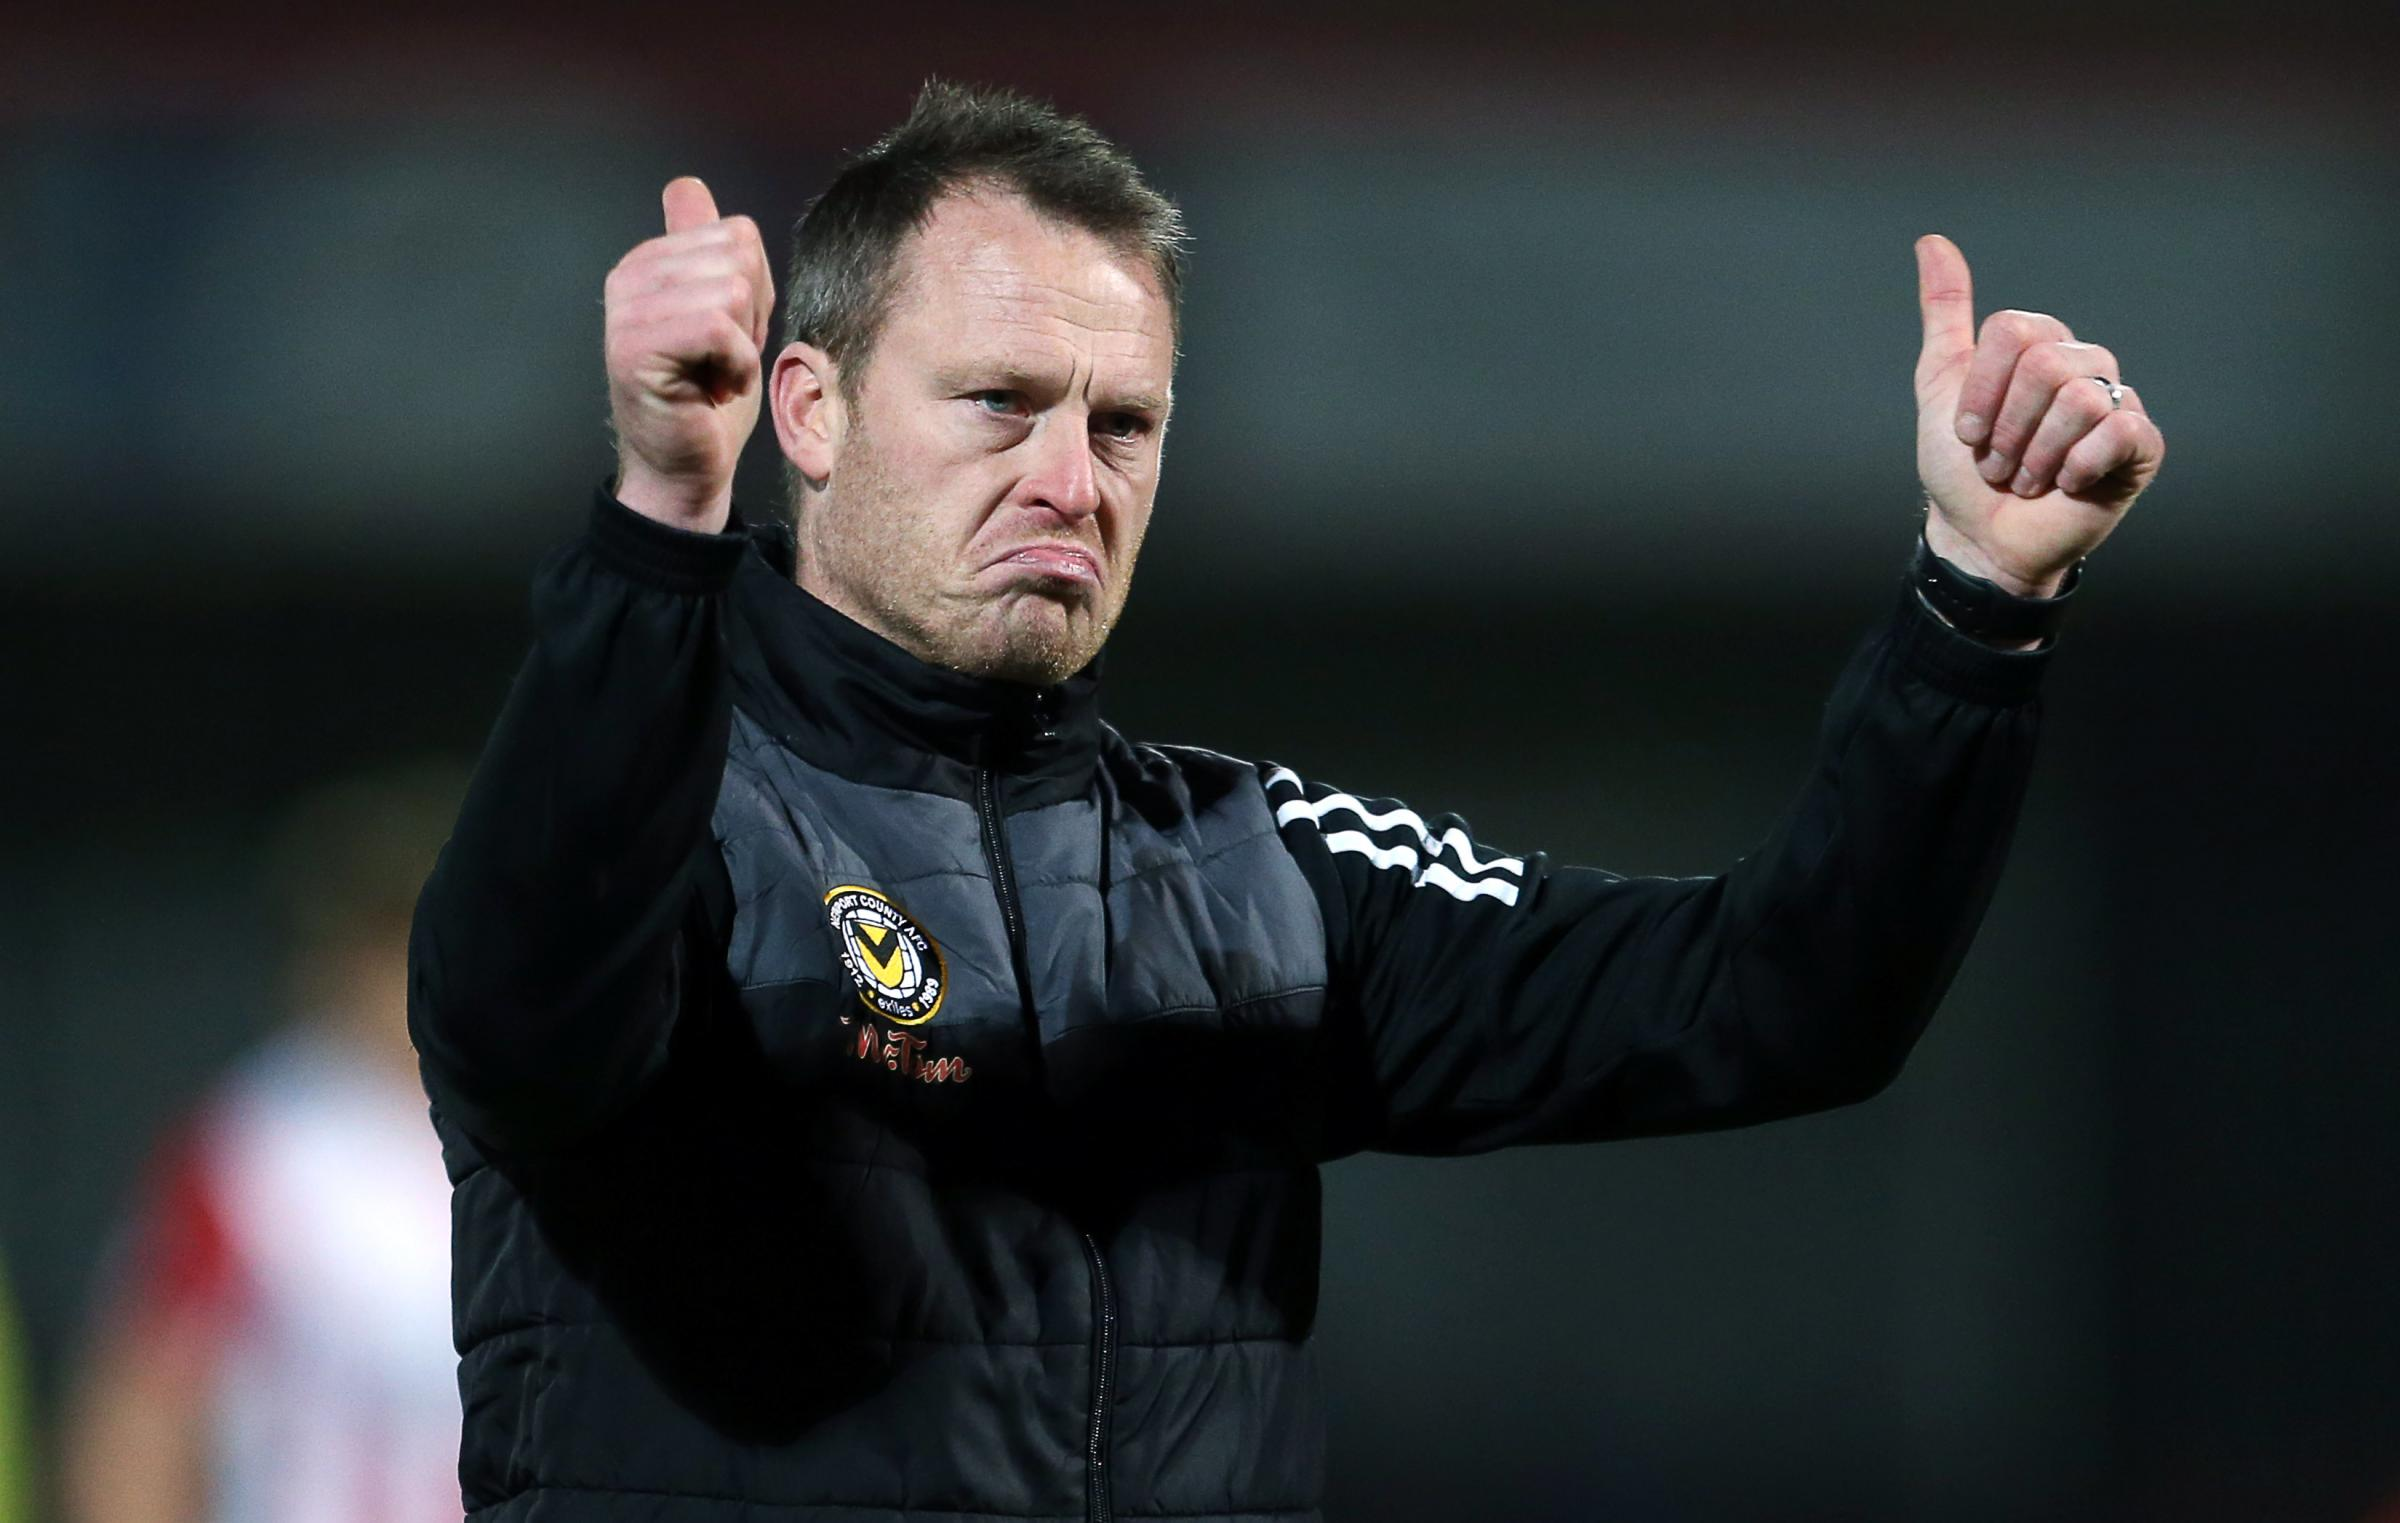 FRUSTRATED: Newport County boss Michael Flynn reacts to his team's draw at Cheltenham Town. Pictures: Huw Evans Agency